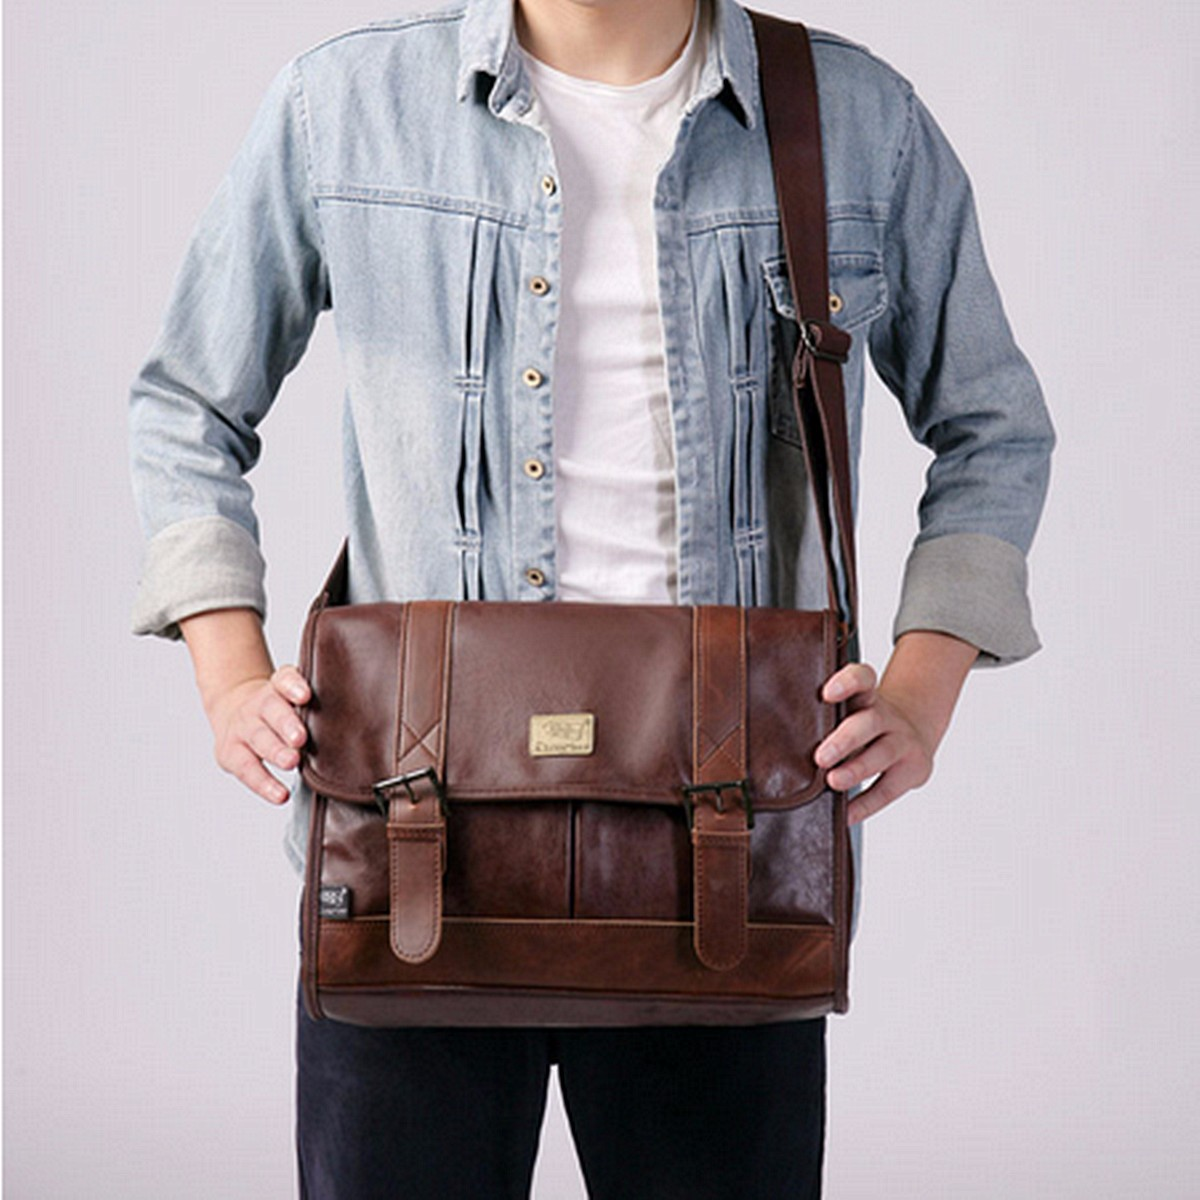 Vintage Men PU Leather Shoulder Bags Satchel Briefcase Laptop Travel Bags